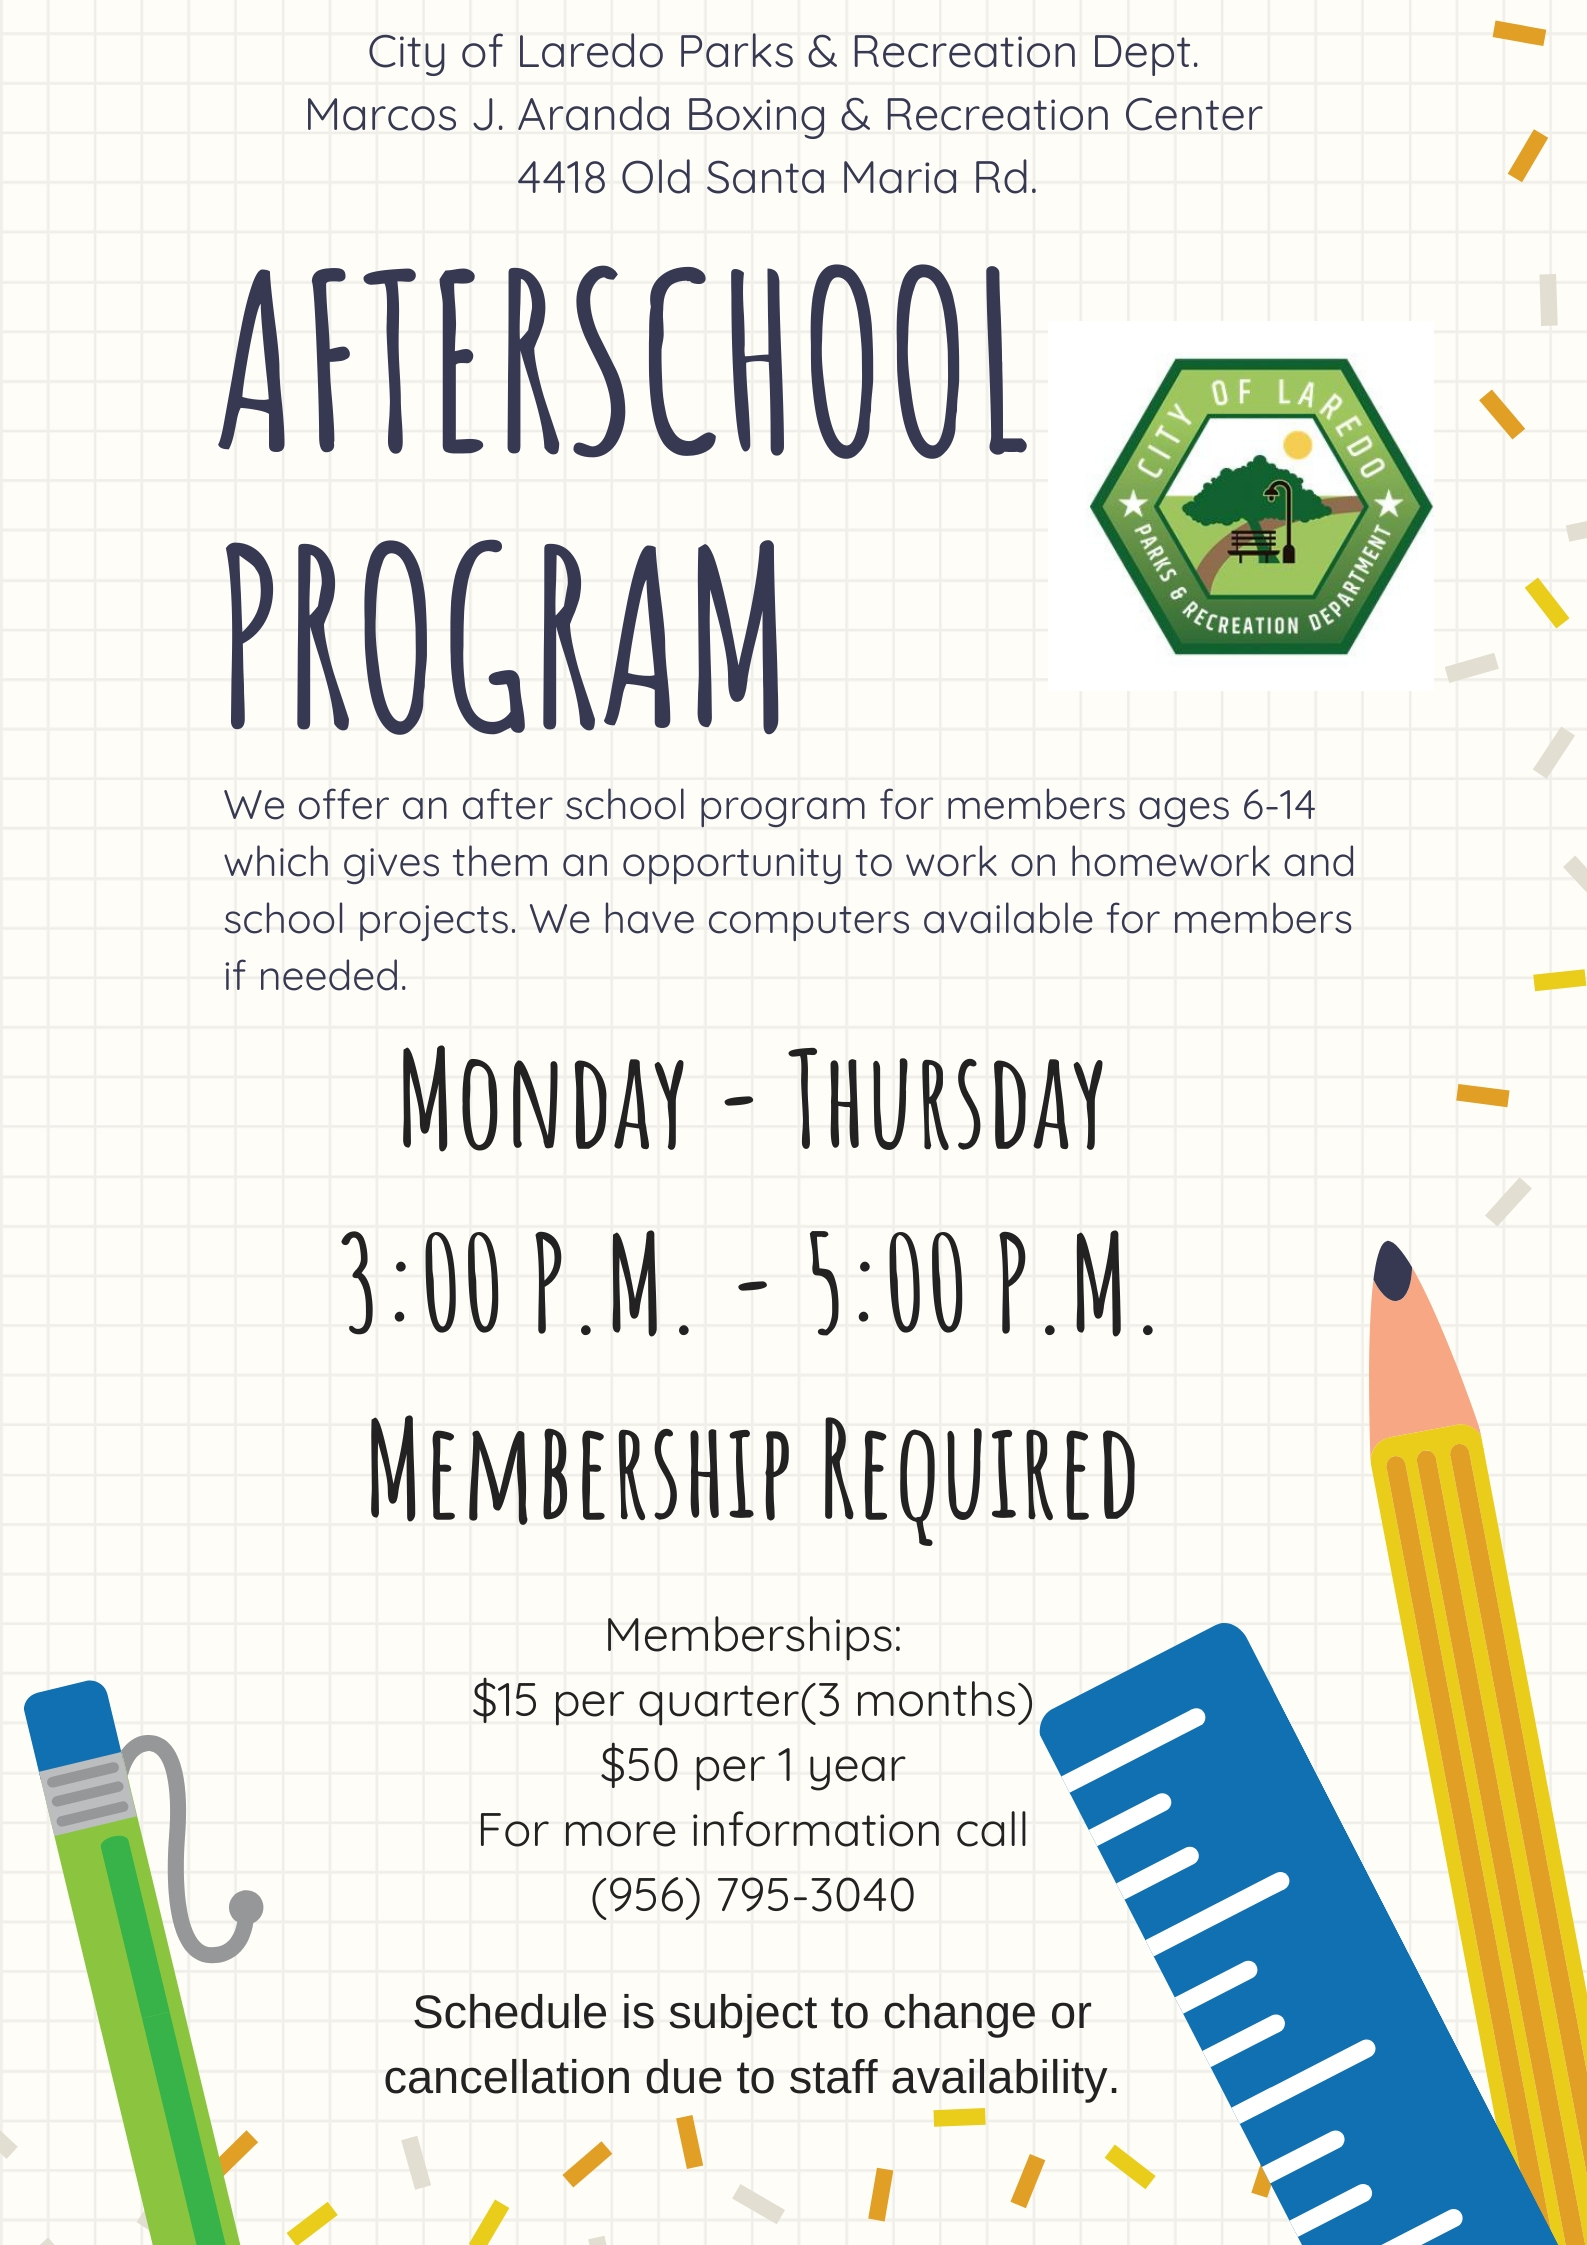 Afterschool Program Jpeg